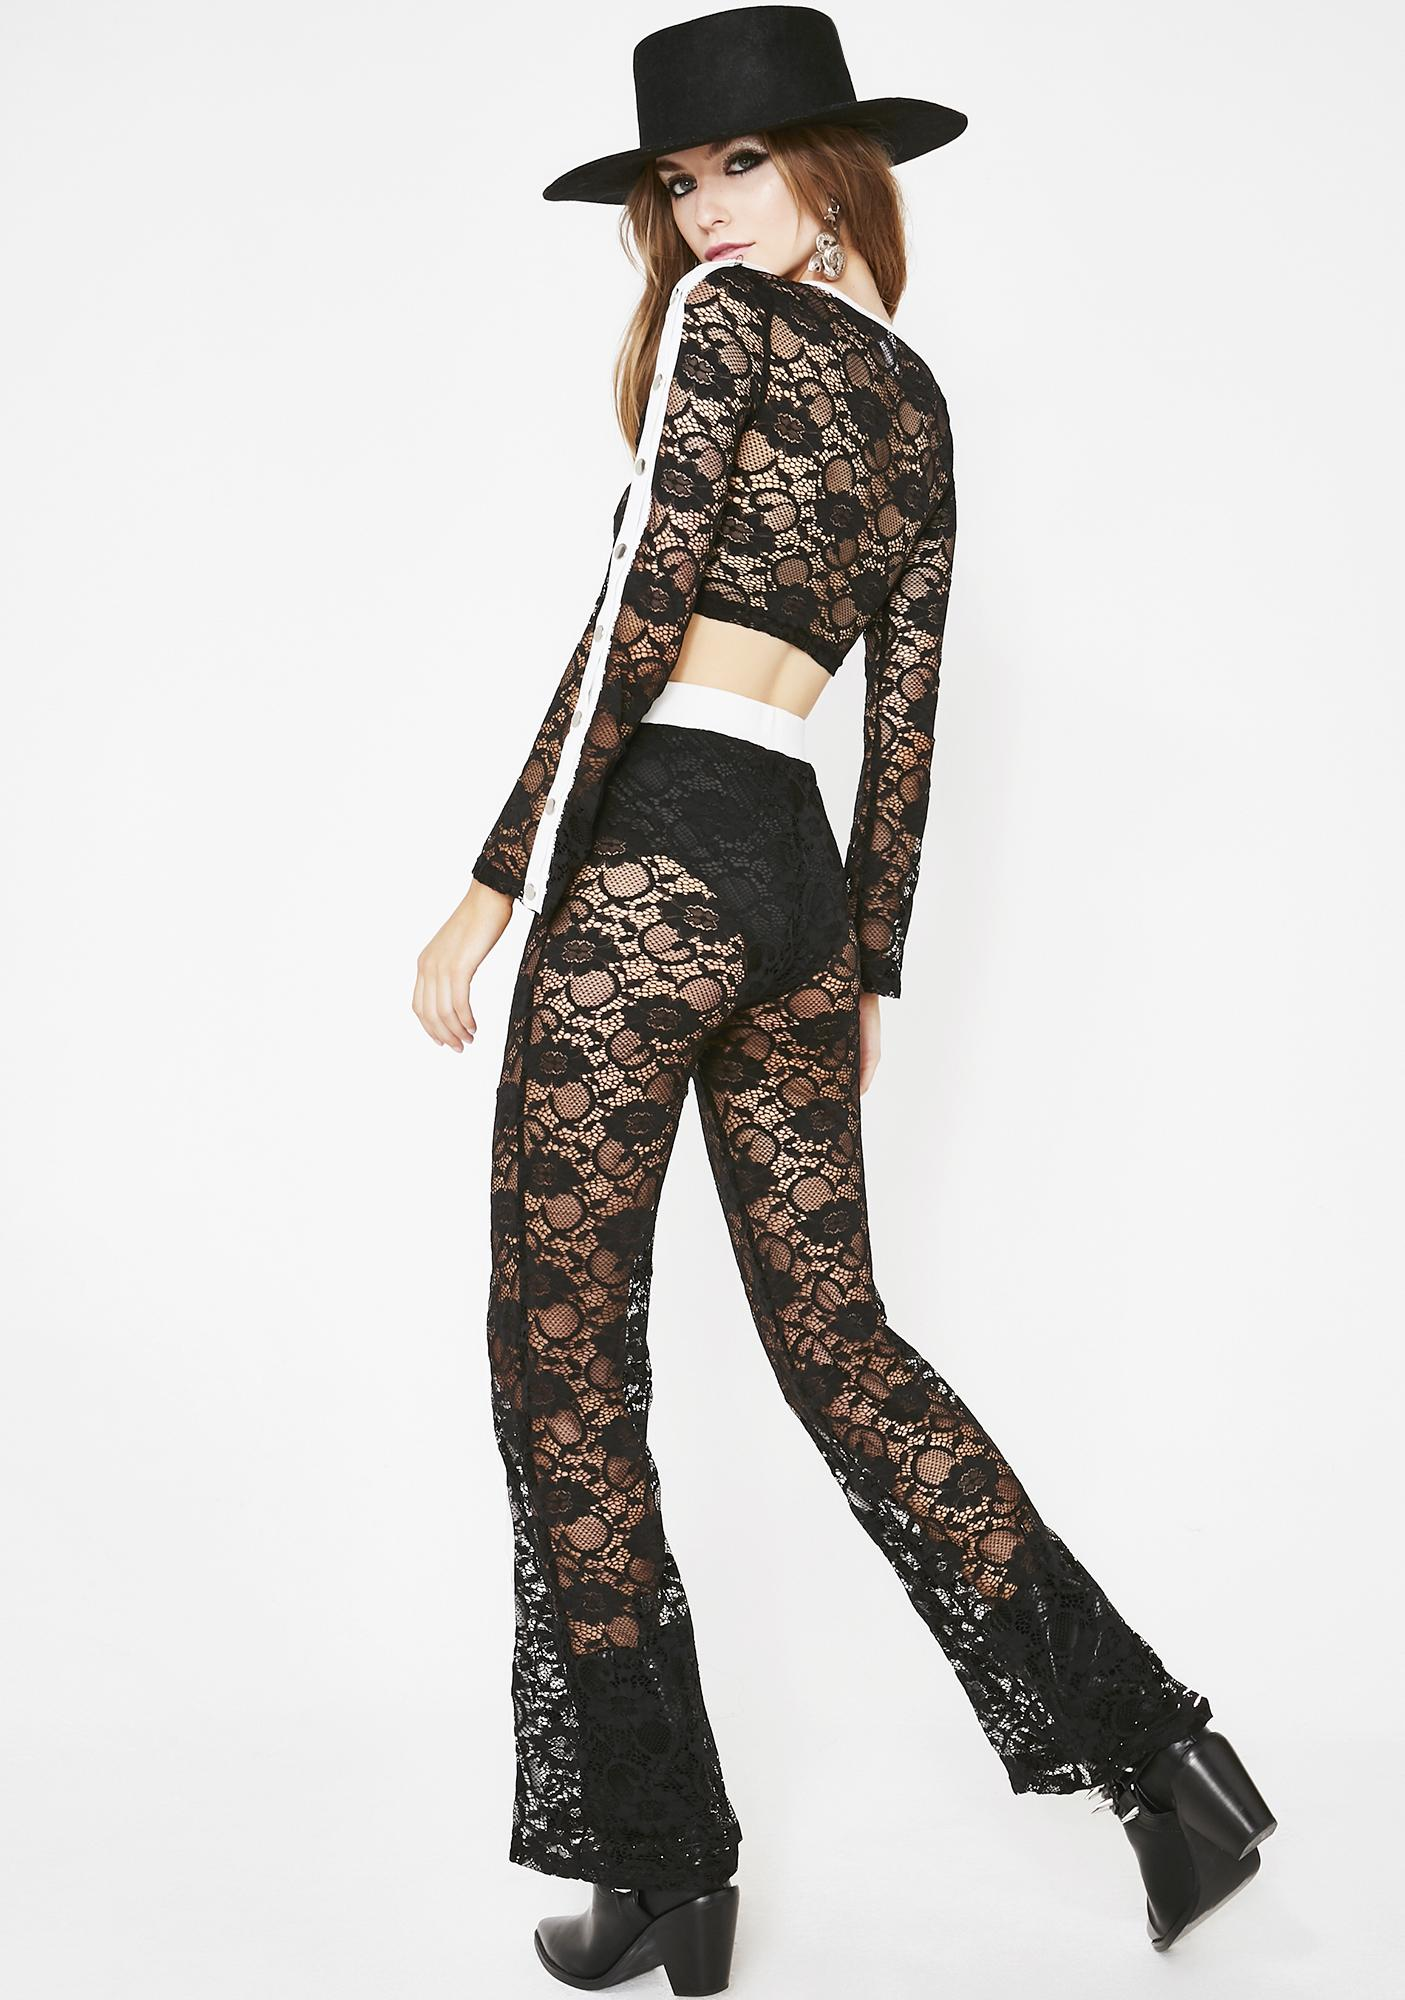 For The Night Lace Set